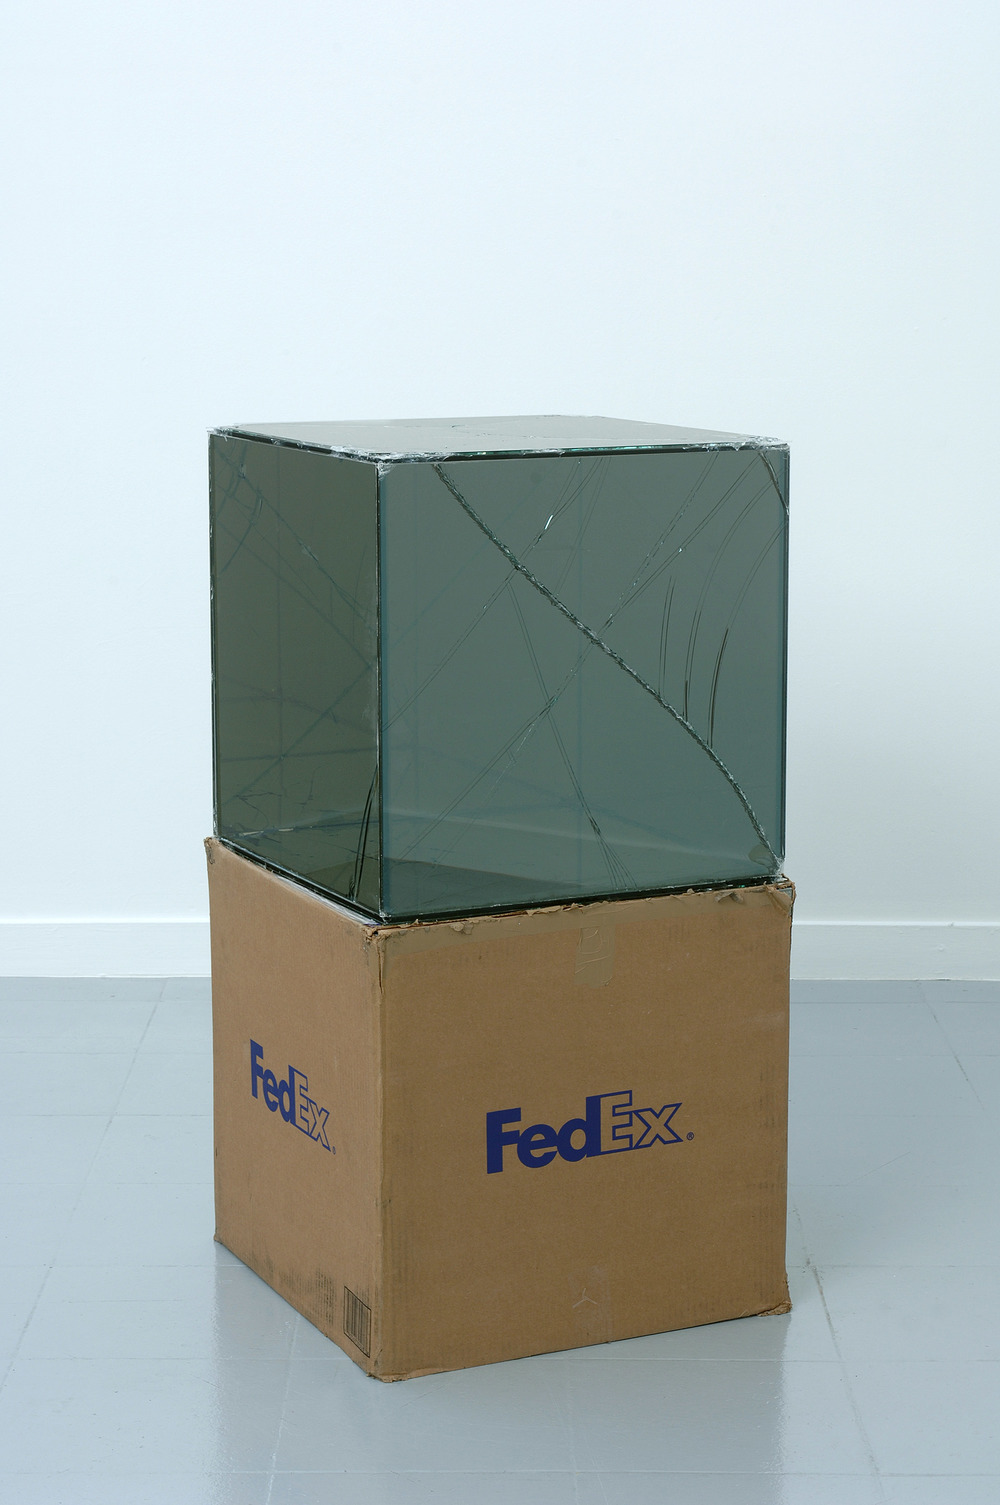 FedEx® Large Kraft Box 2005 FEDEX 330508 REV 10/05 SSCC, International Priority, Los Angeles–Brussels trk#865282057942, October 27–30, 2008    2008–   Laminated Mirropane, FedEx shipping box, accrued FedEx shipping and tracking labels, silicone, metal, and tape  20 x 20 x 20 inches   Industrial Pictures, 2008